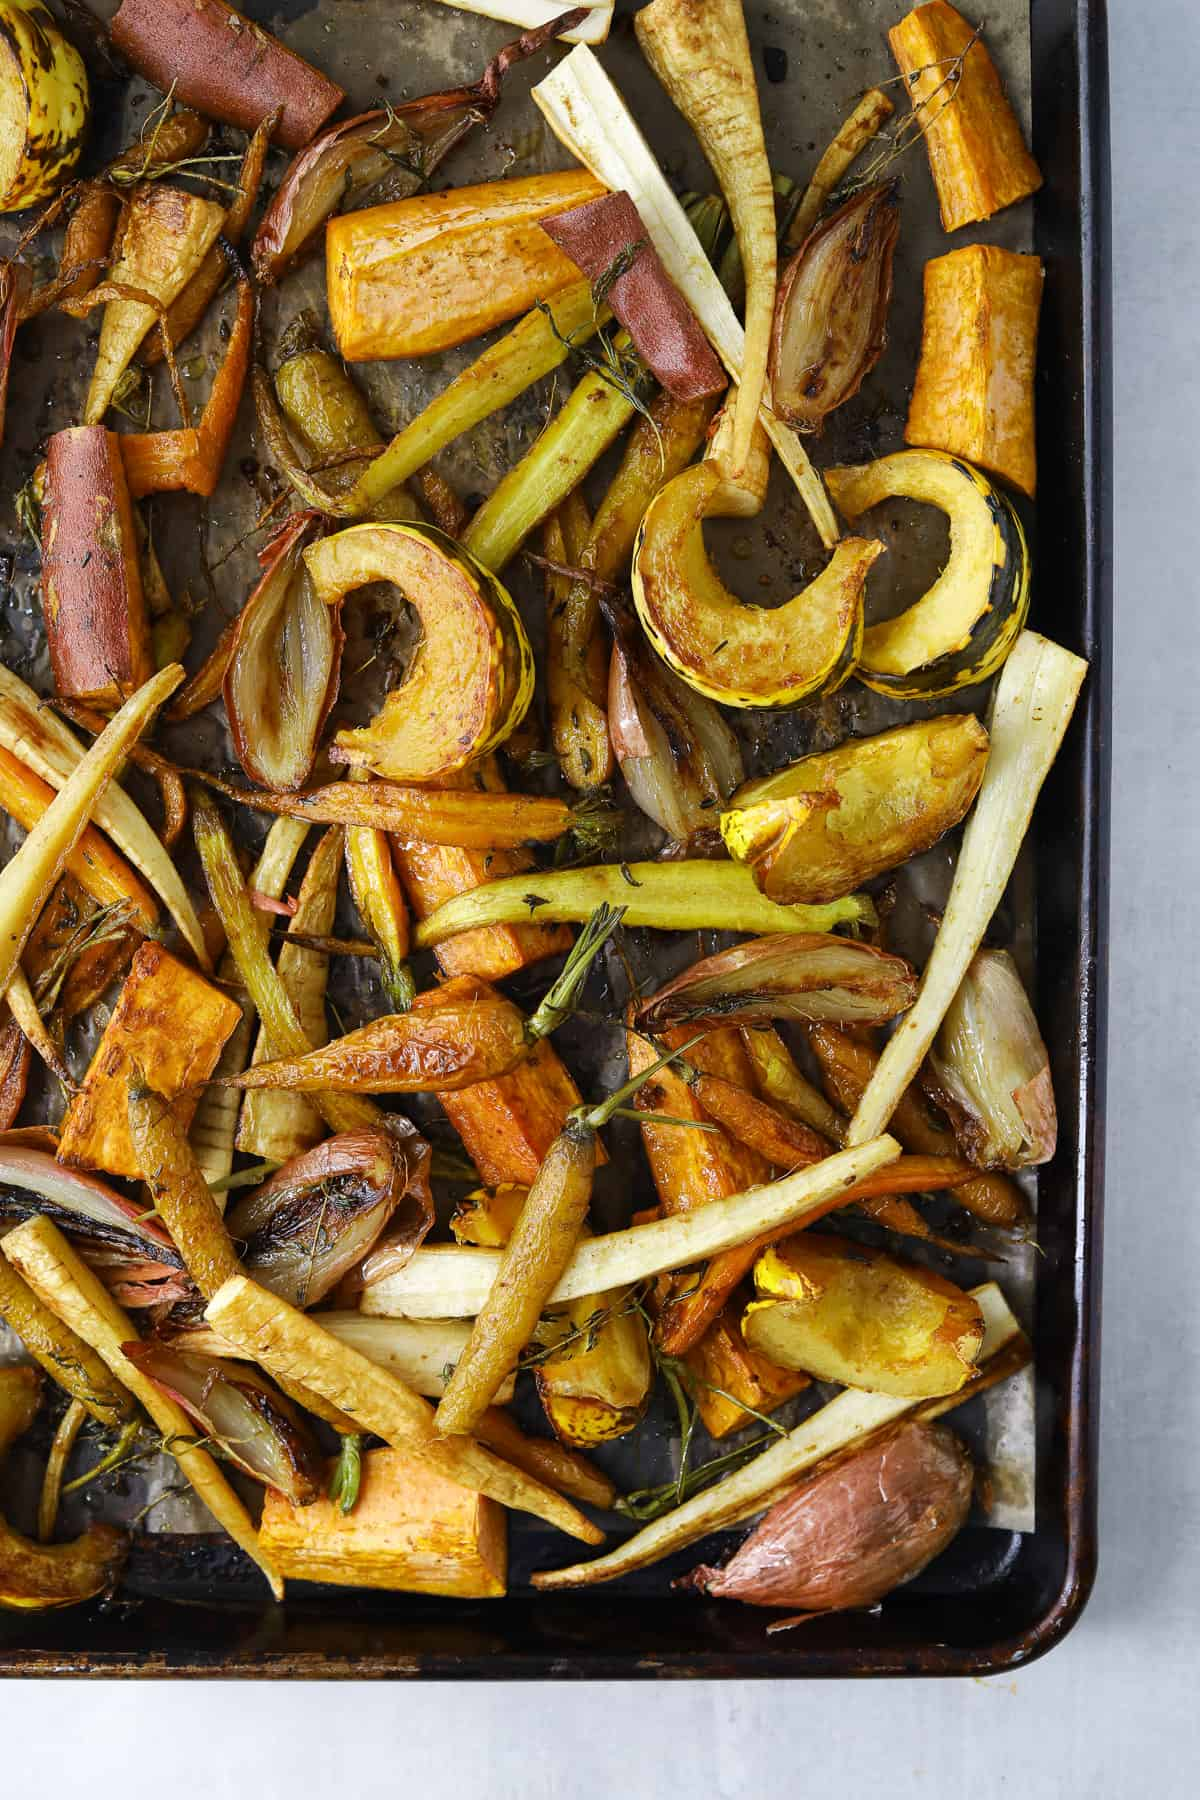 a baking tray golden-brown roasted carrots, squash, sweet potato and shallot